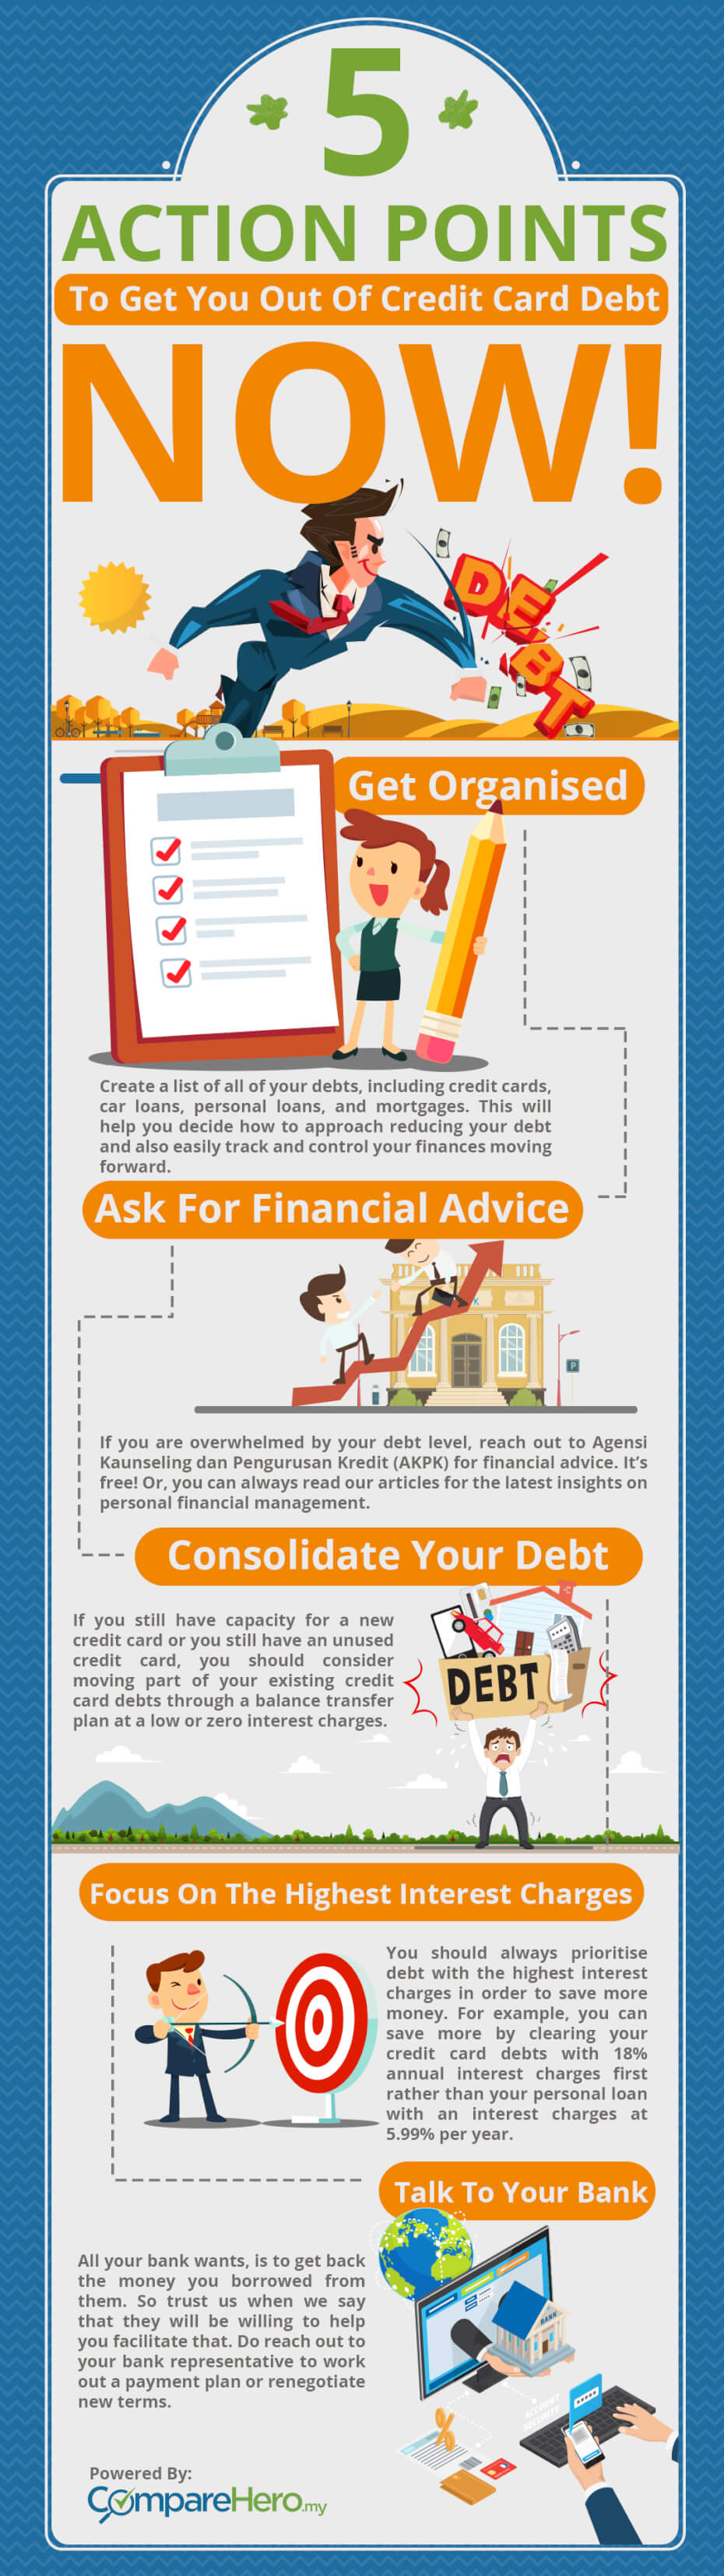 5_Action_Points_to_Get_You_Out_of_Credit_Card_Debt_NOW